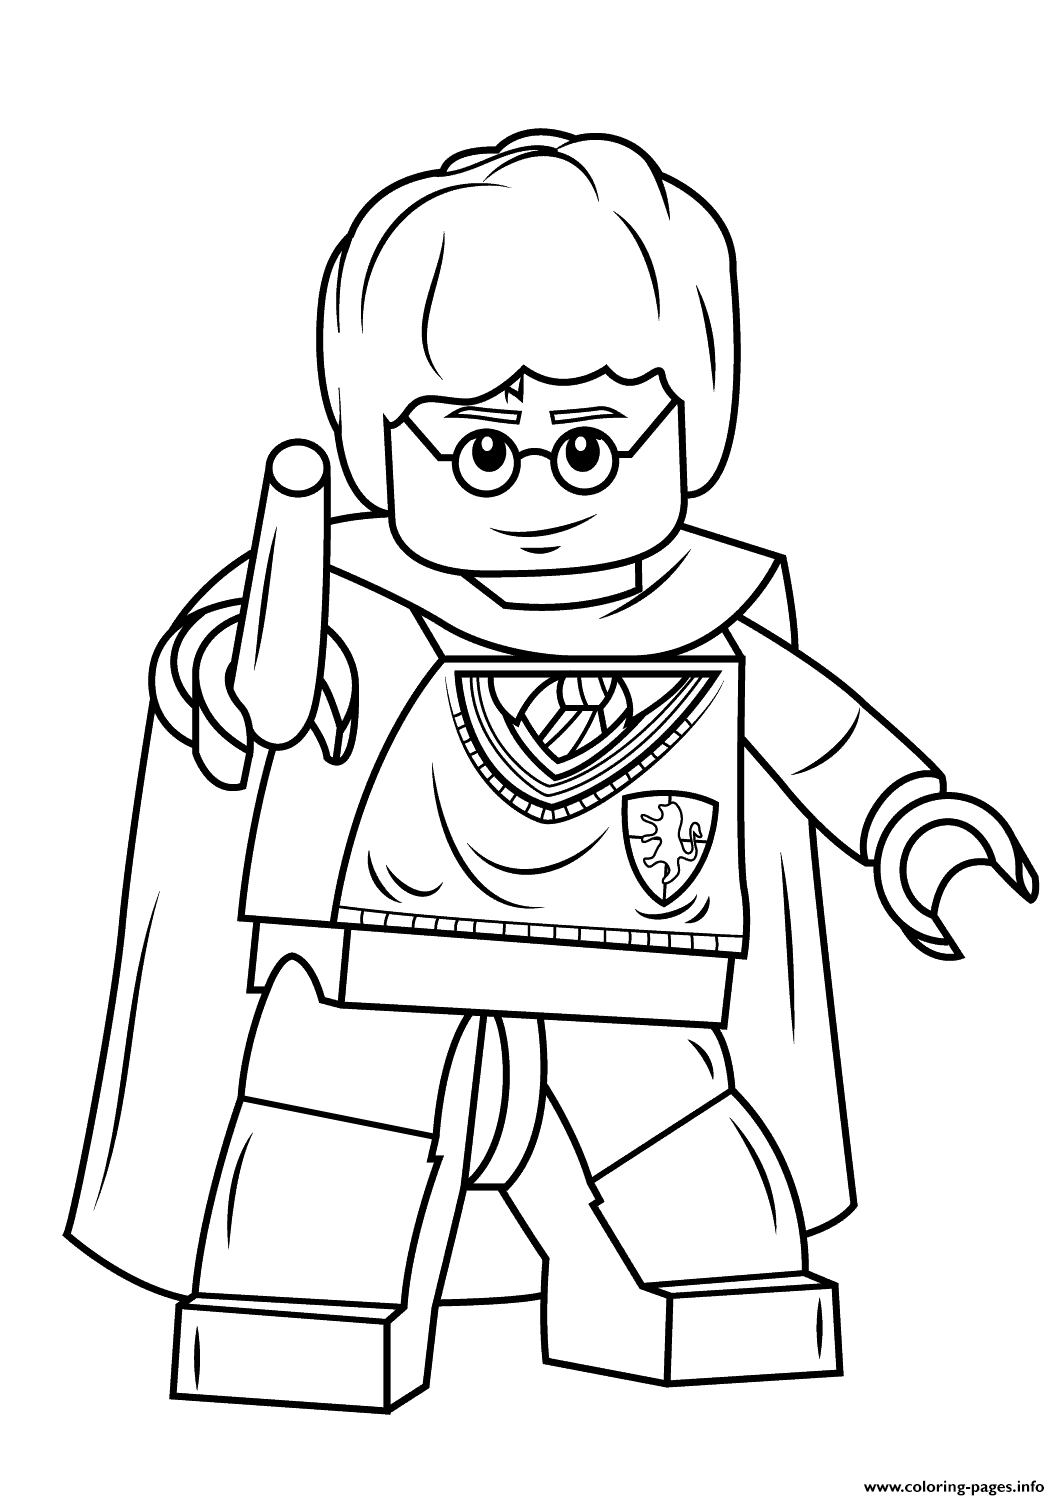 1060x1500 Easy Harry Potter Coloring Pages